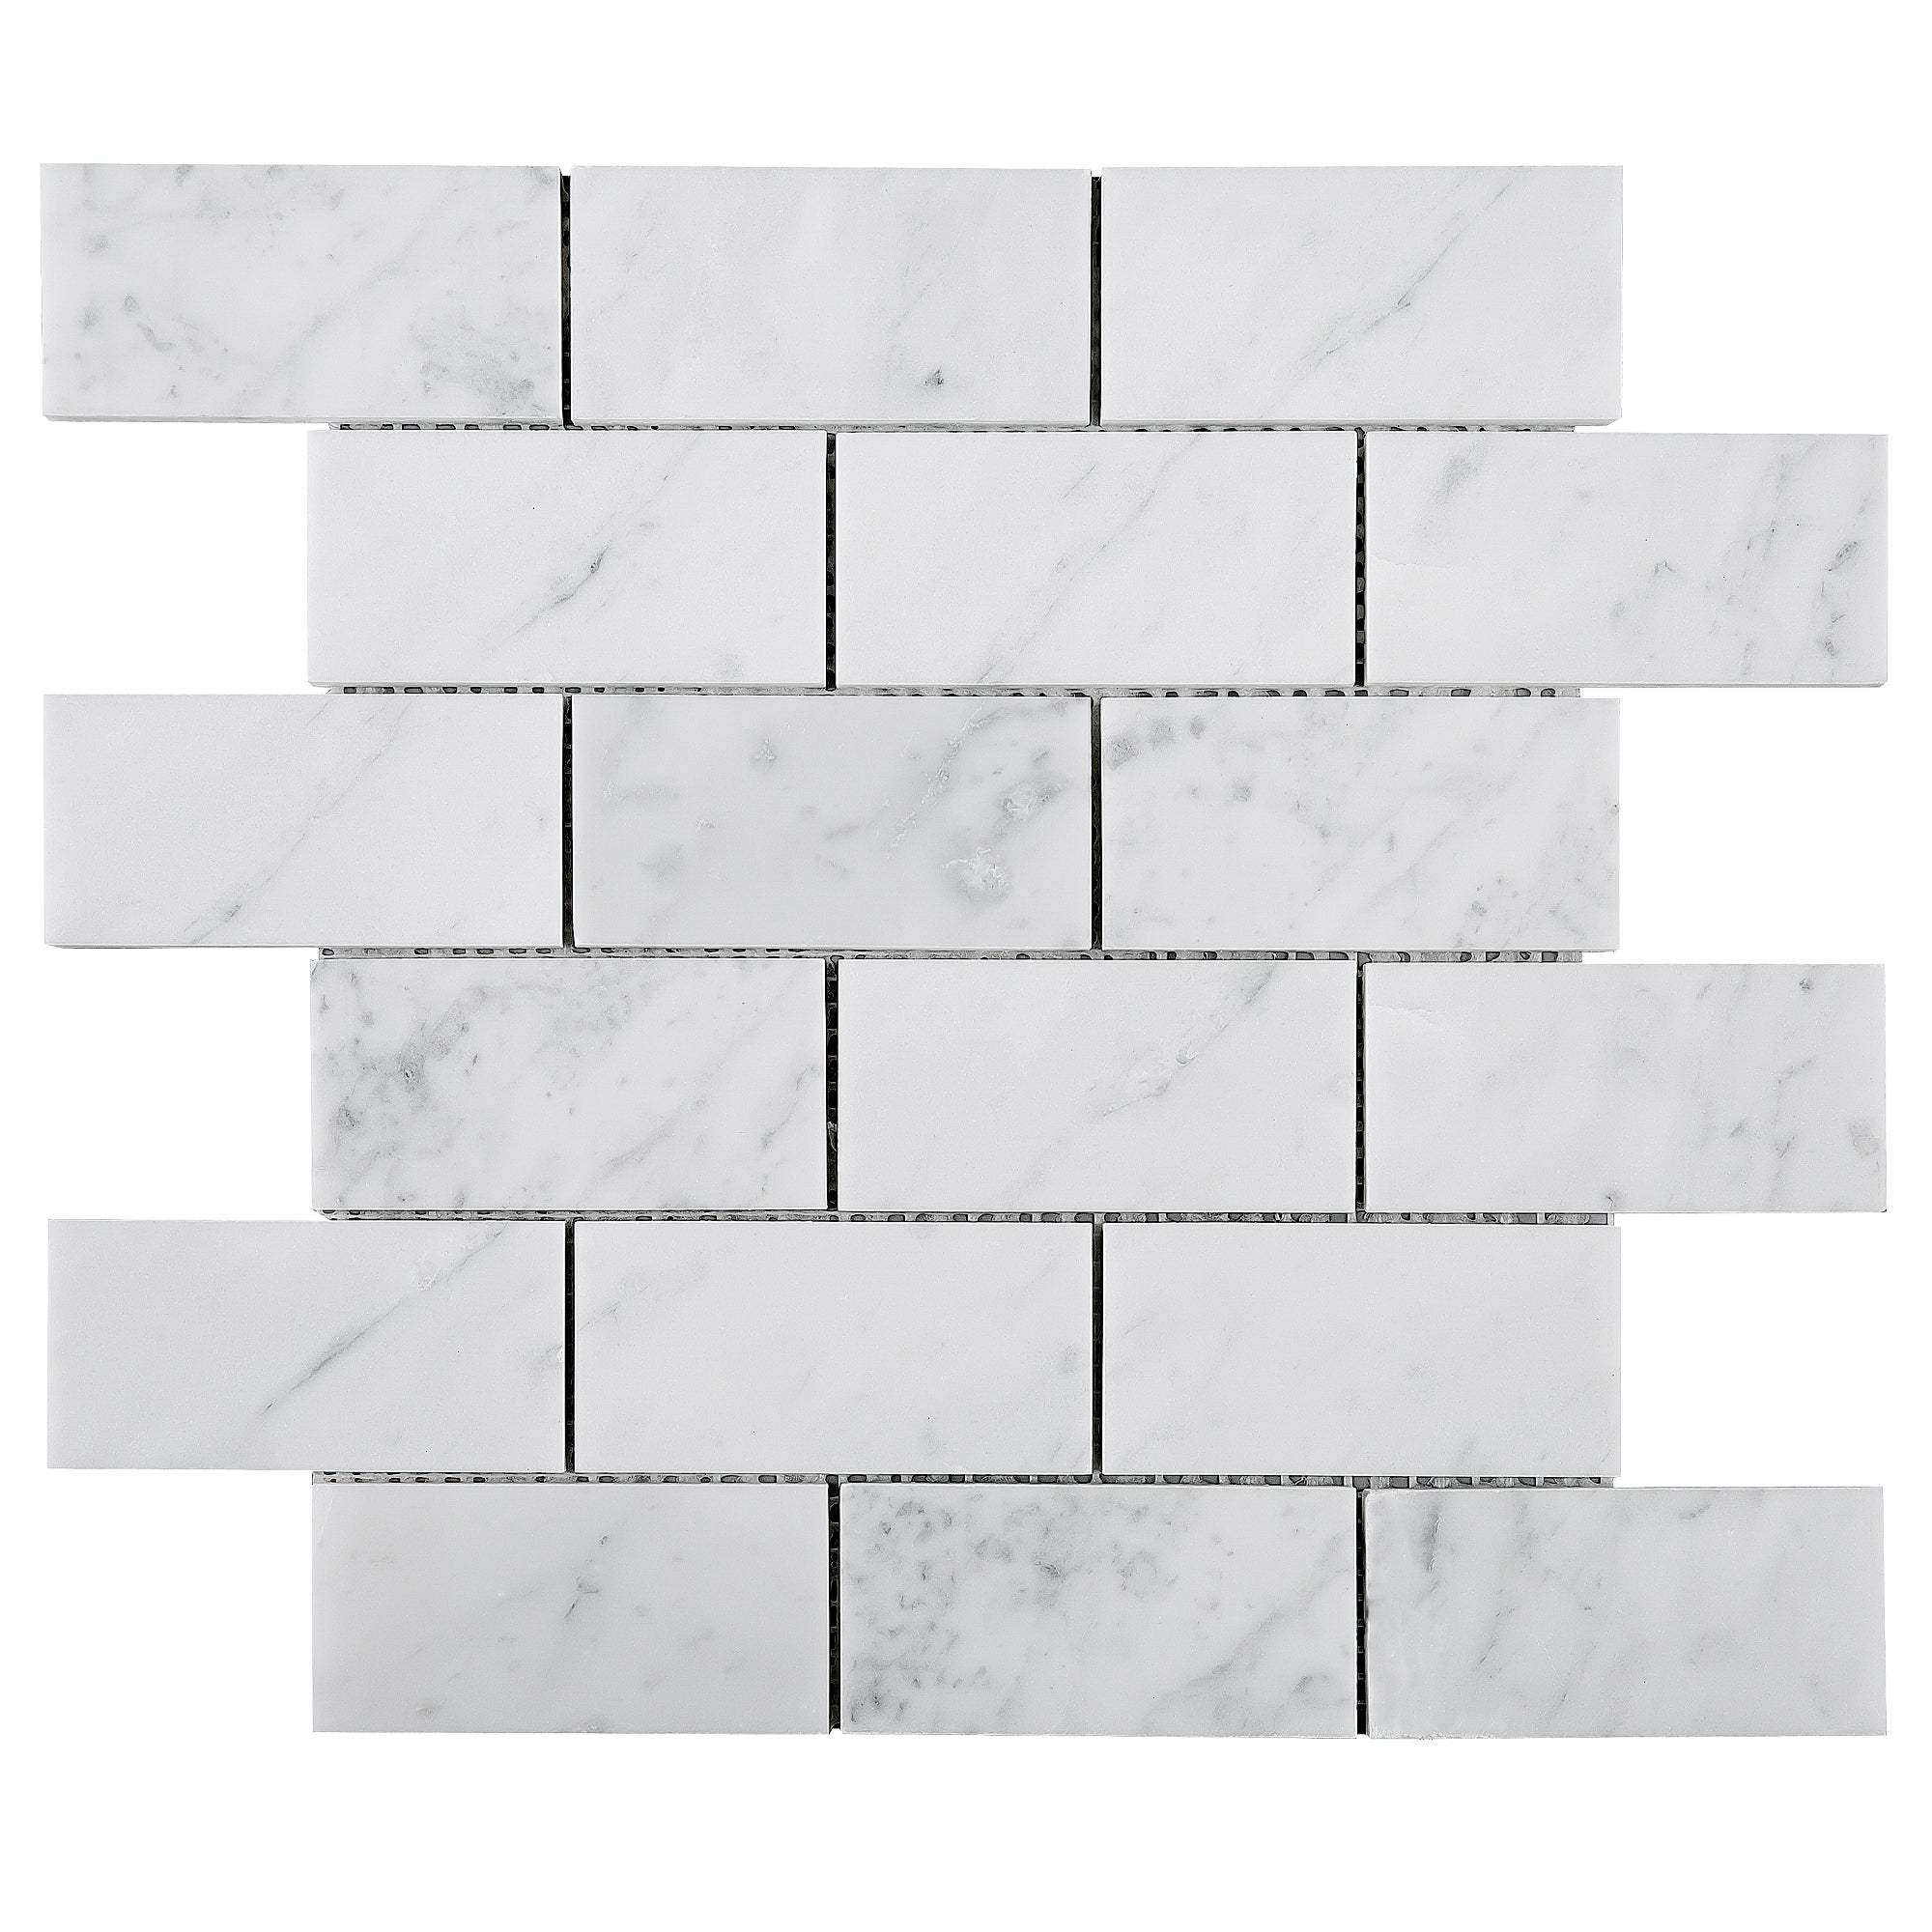 Twhcag 01 2x4 White Carrara Marble Mosaic Tile Backsplash Tile Generation